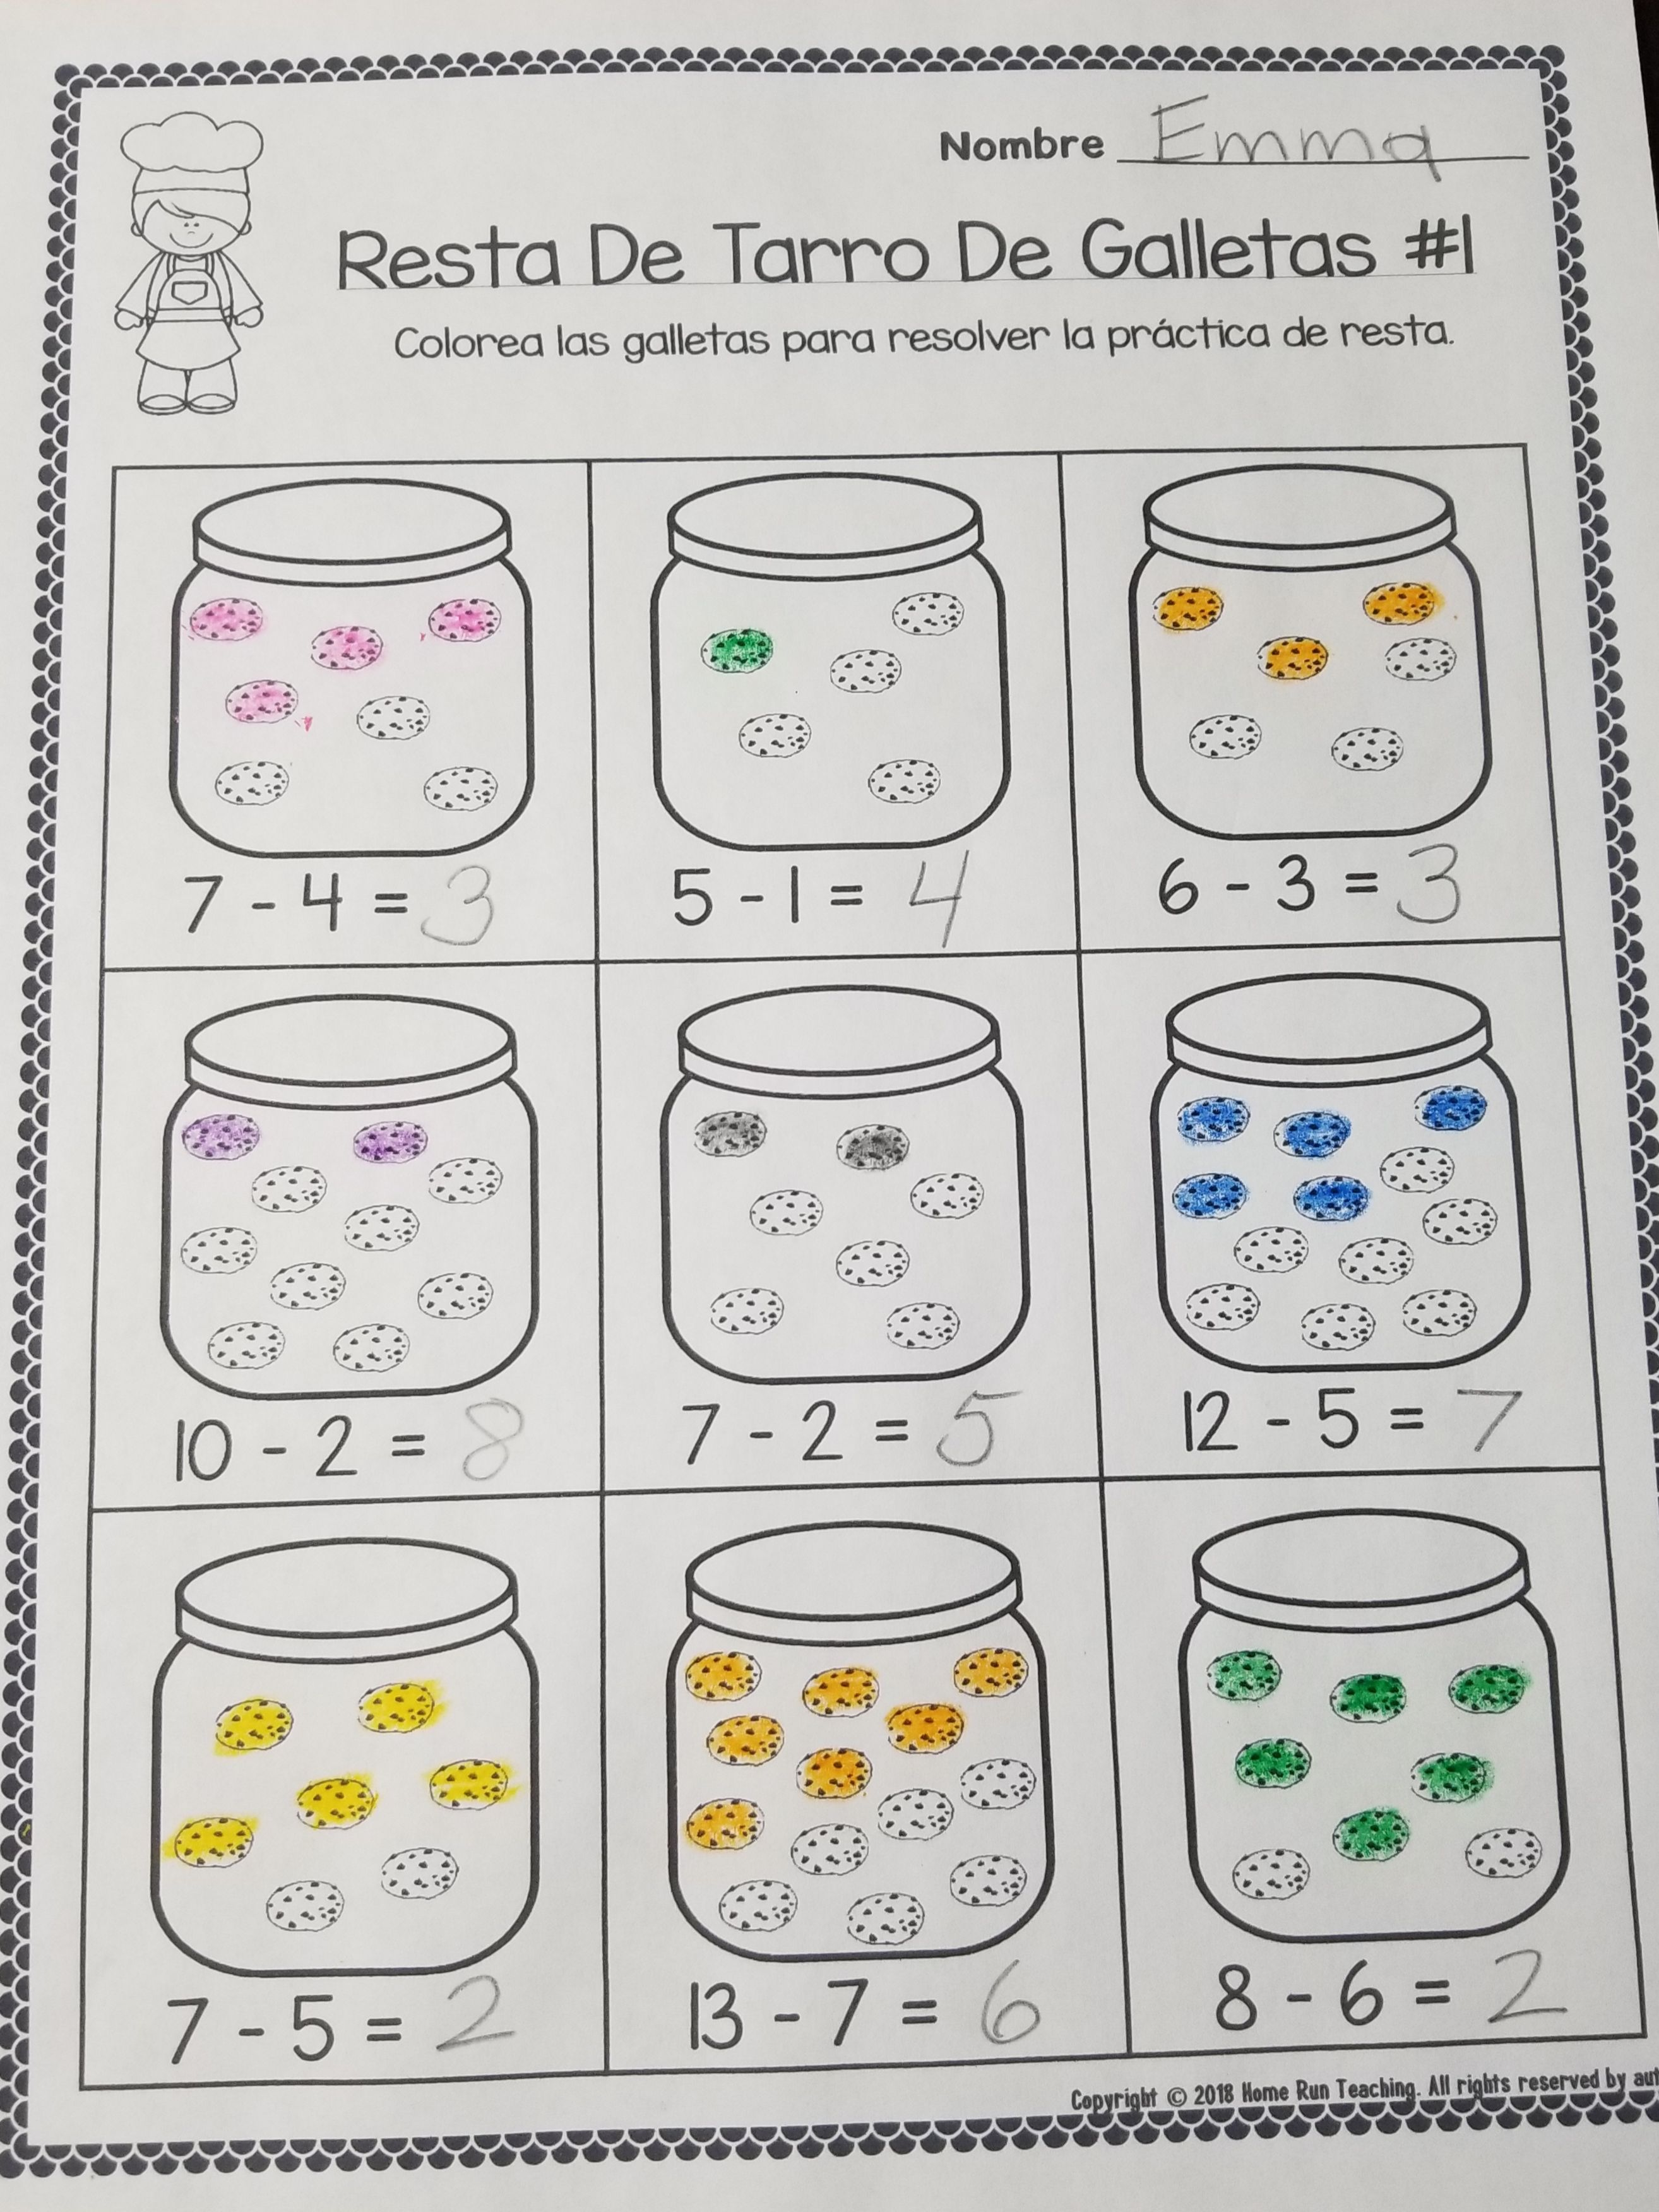 Color By Subtraction Packet In Spanish Part Of A Subtraction Fun Packet Including Ten Frame Elementary School Math Activities Subtraction Homeschool Programs [ 3504 x 2628 Pixel ]